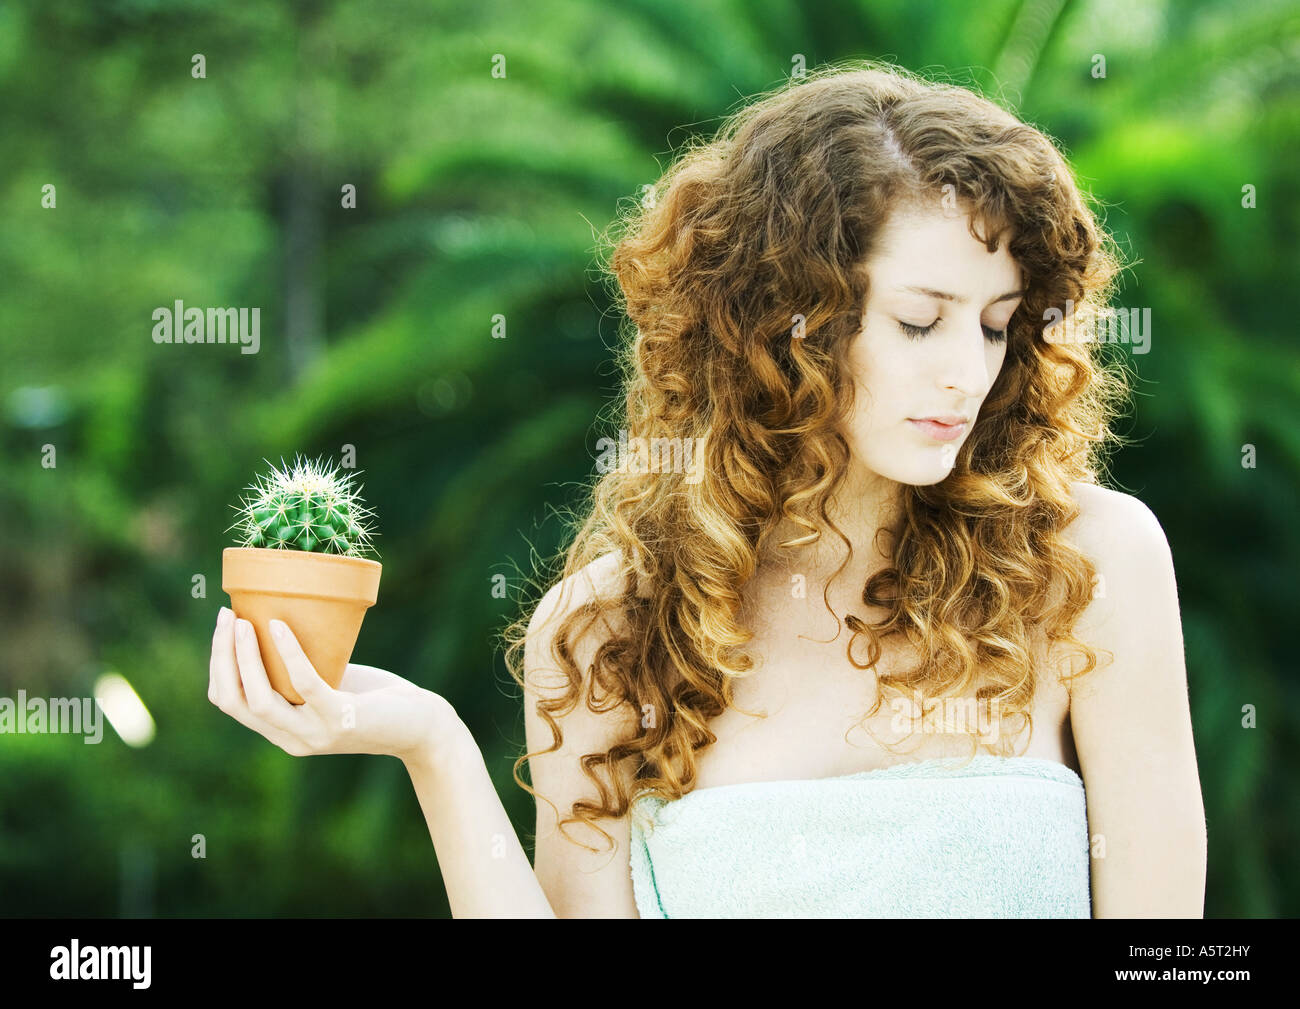 Woman holding cactus in palm, looking away - Stock Image